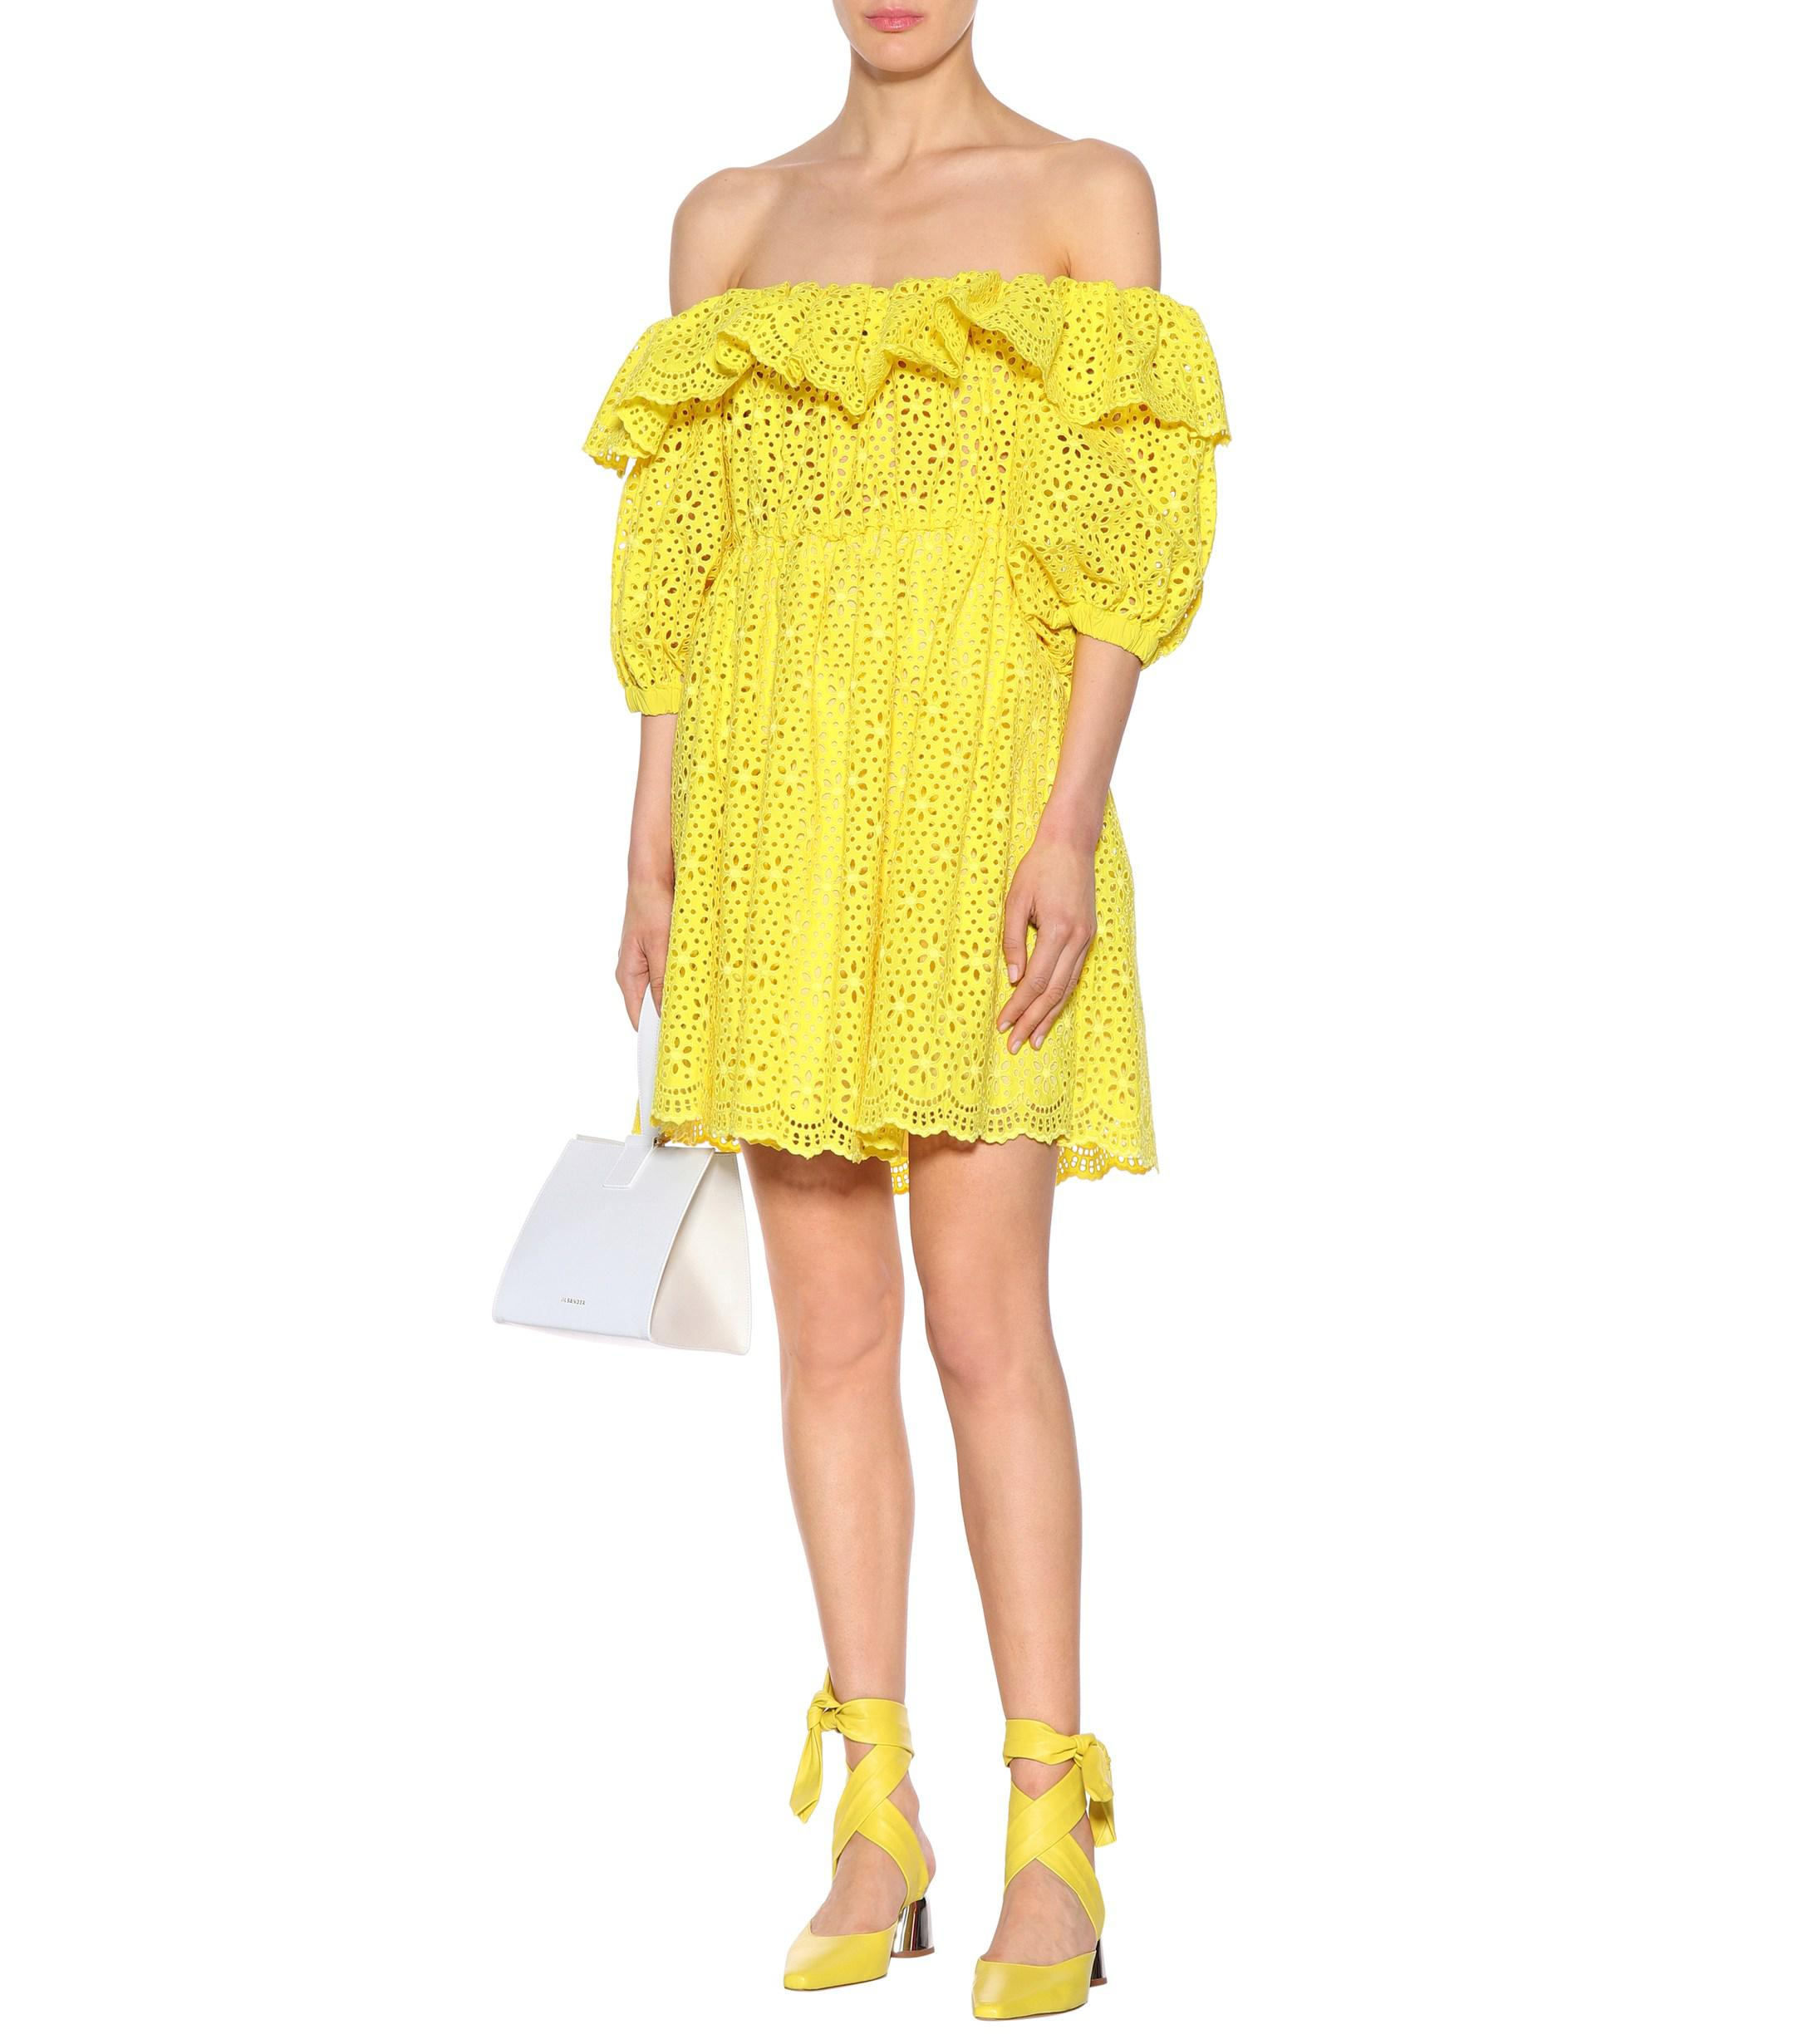 82f5ad699858 MSGM - Yellow Off-the-shoulder Cotton Dress - Lyst. View fullscreen